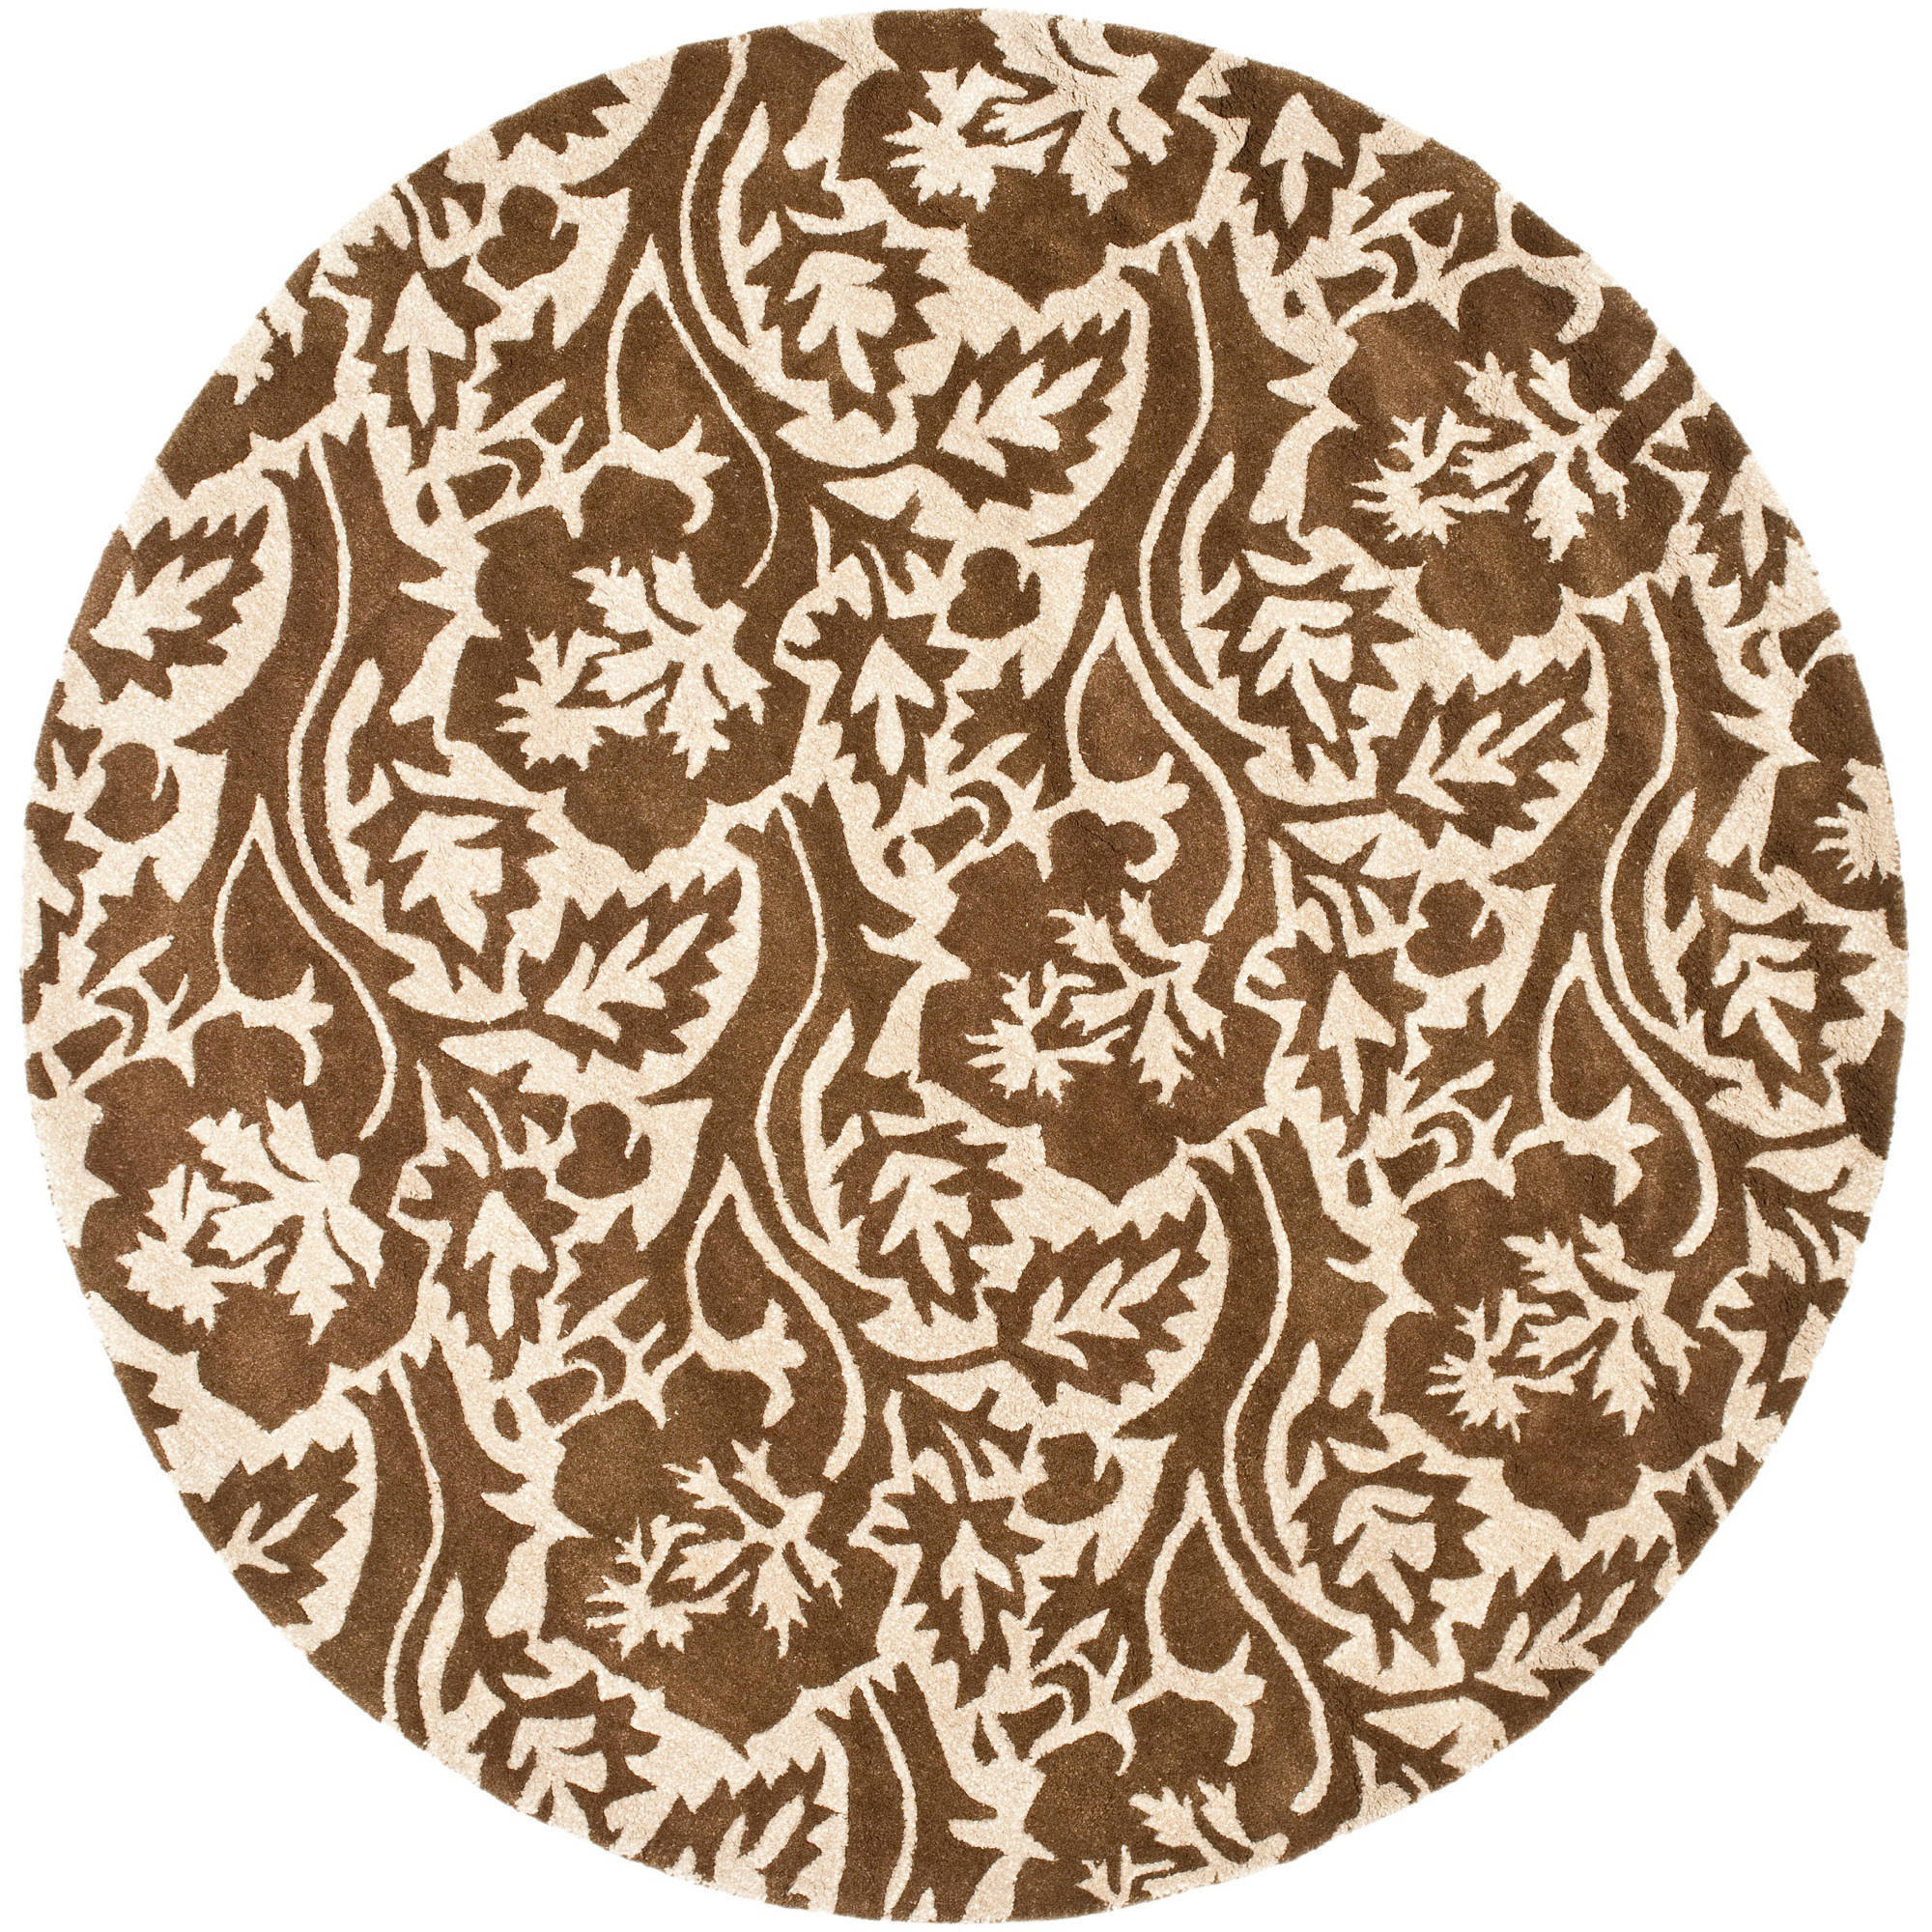 Safavieh Soho Autumn Wool Round Rug, Brown/Ivory, 6'